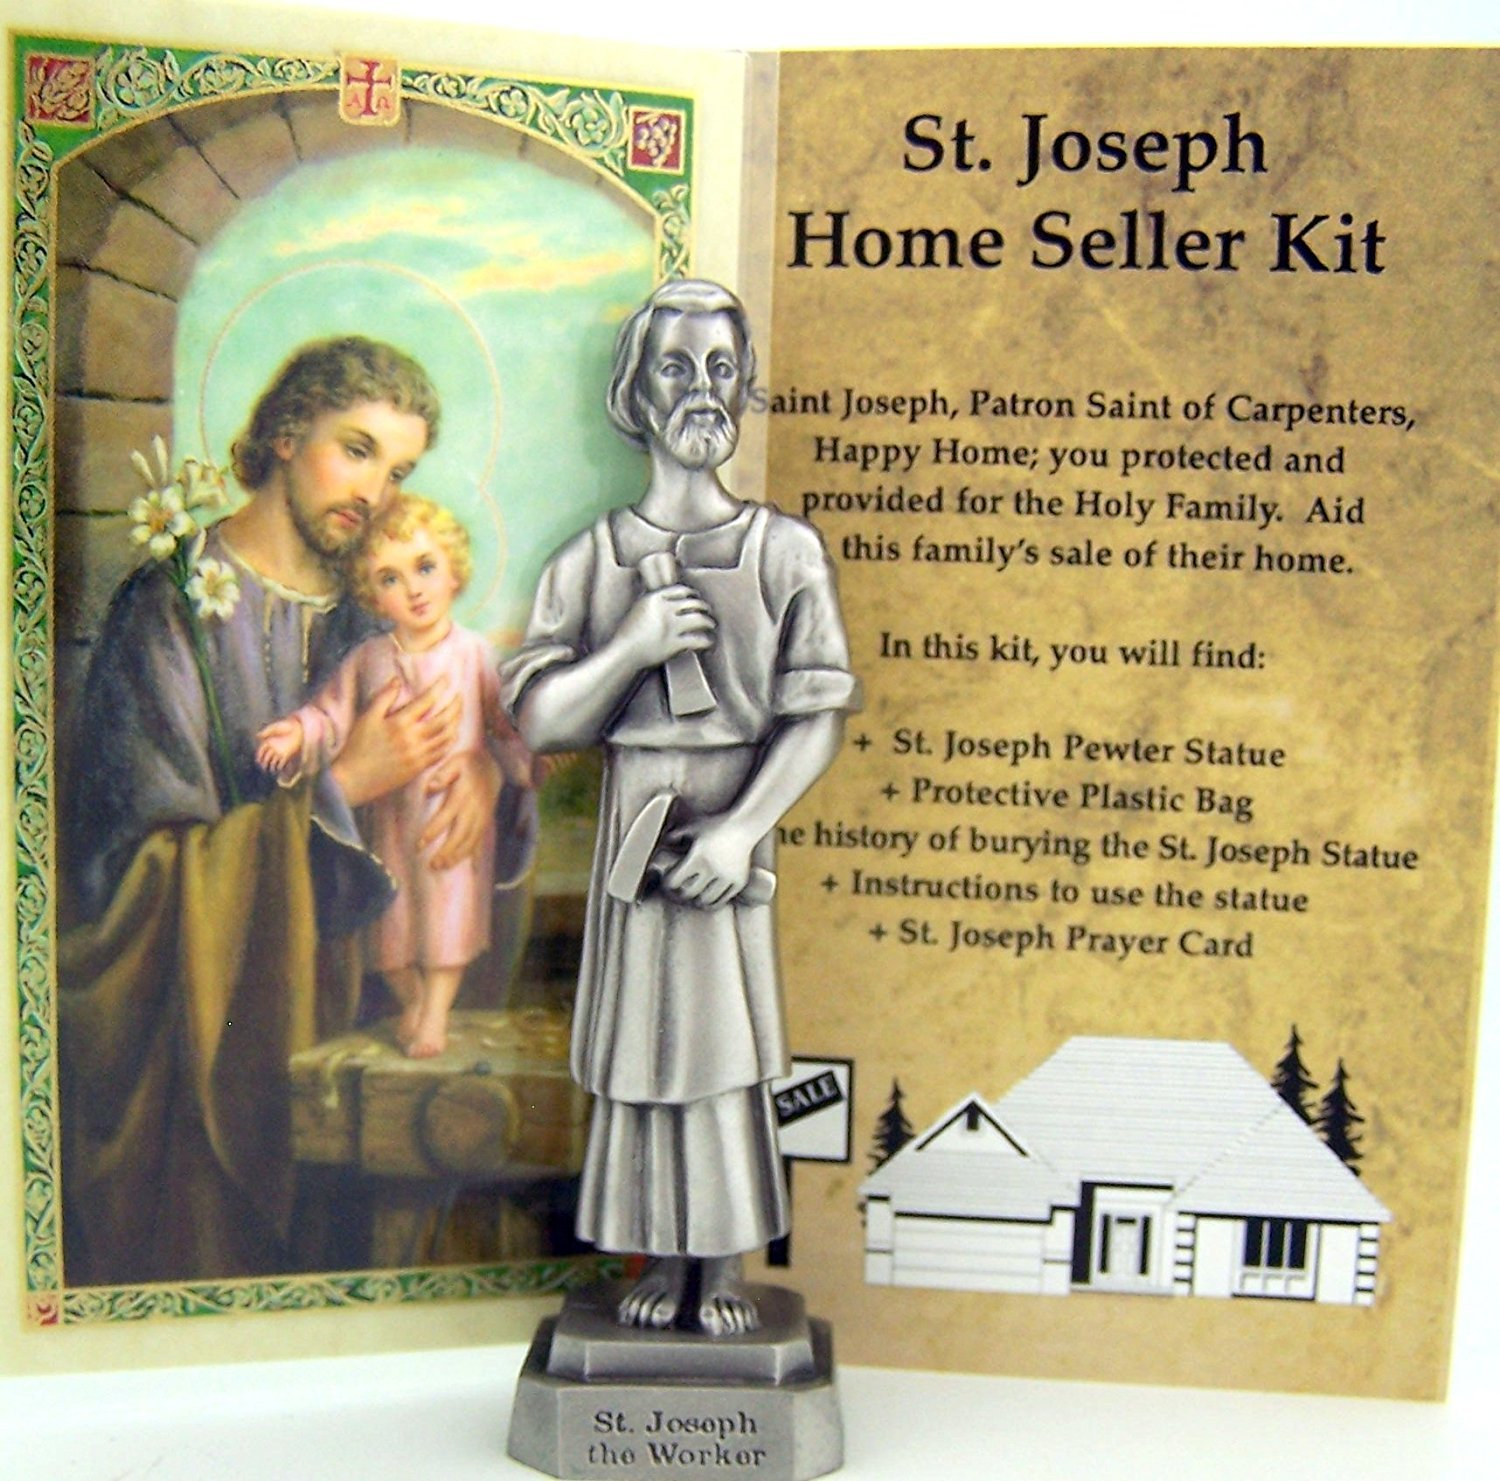 Inspire Nation Quality St Joseph Home Selling Kit Pewter Religious Statue Instructions and Prayer